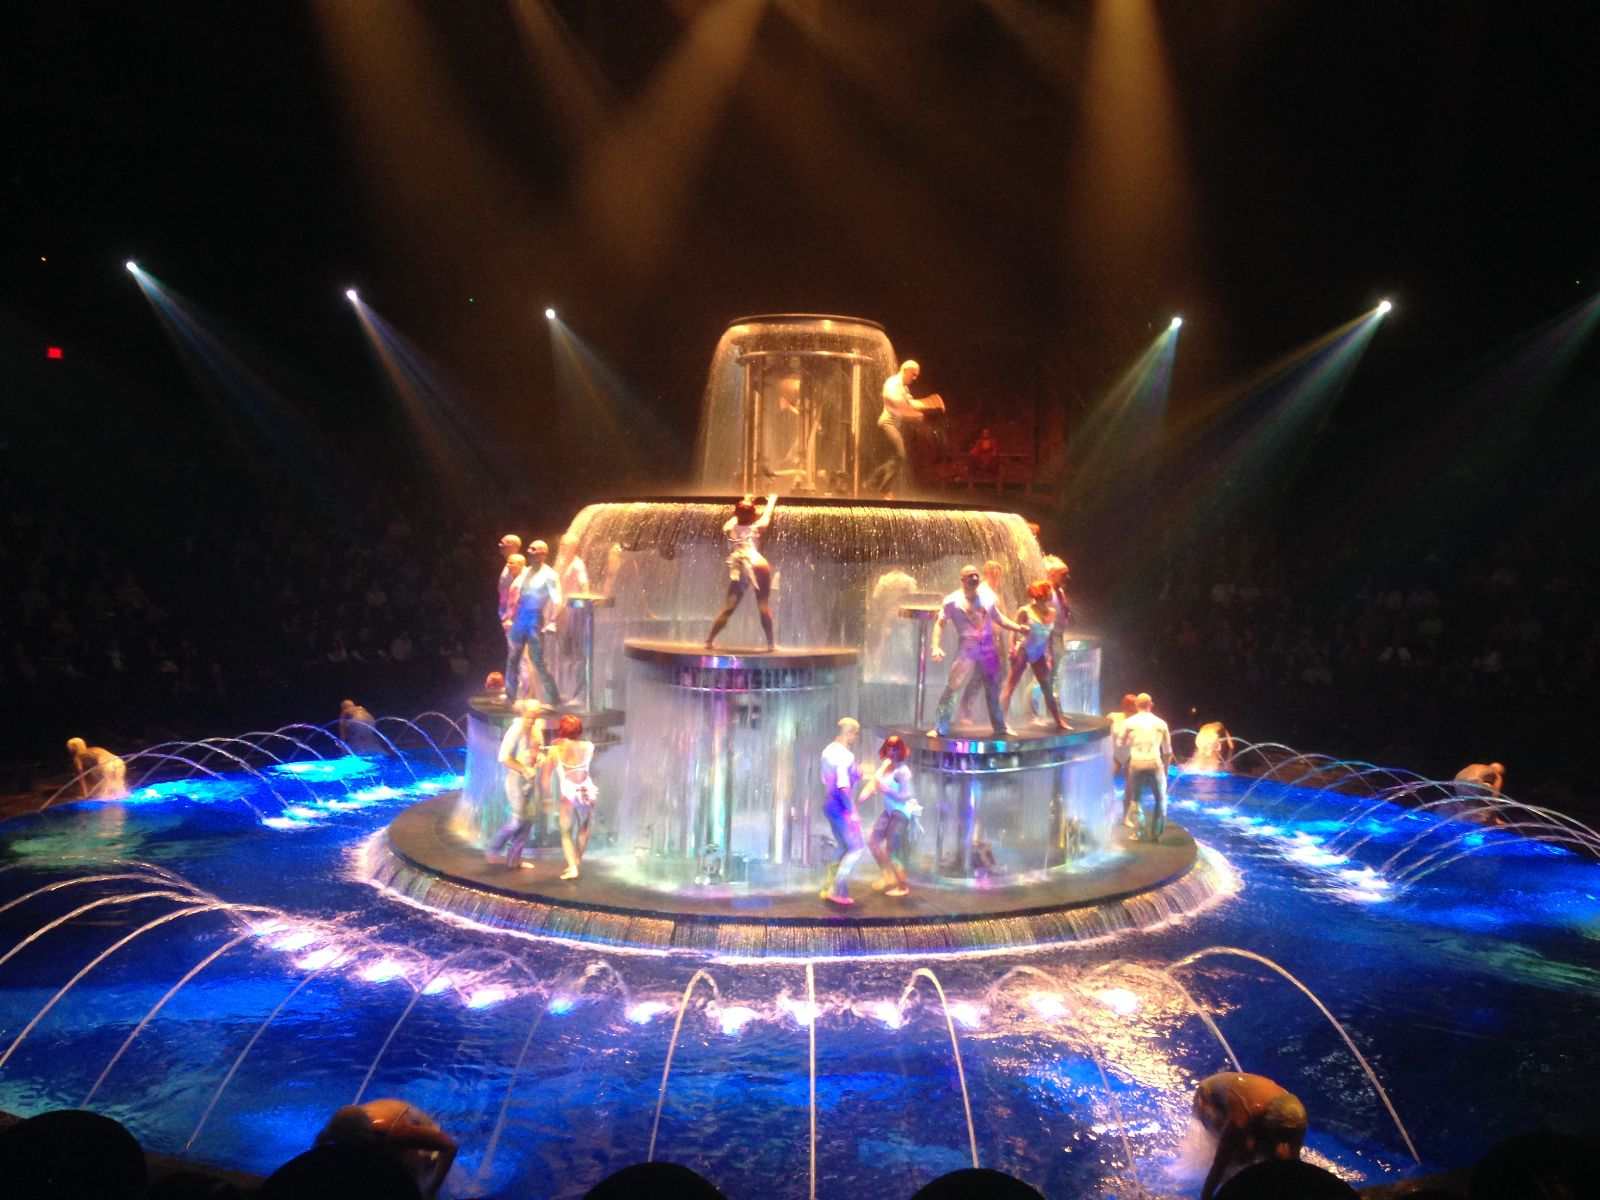 2014.2.1-2014.2.4 Las Vegas and Le Reve the Dream at Wynn |